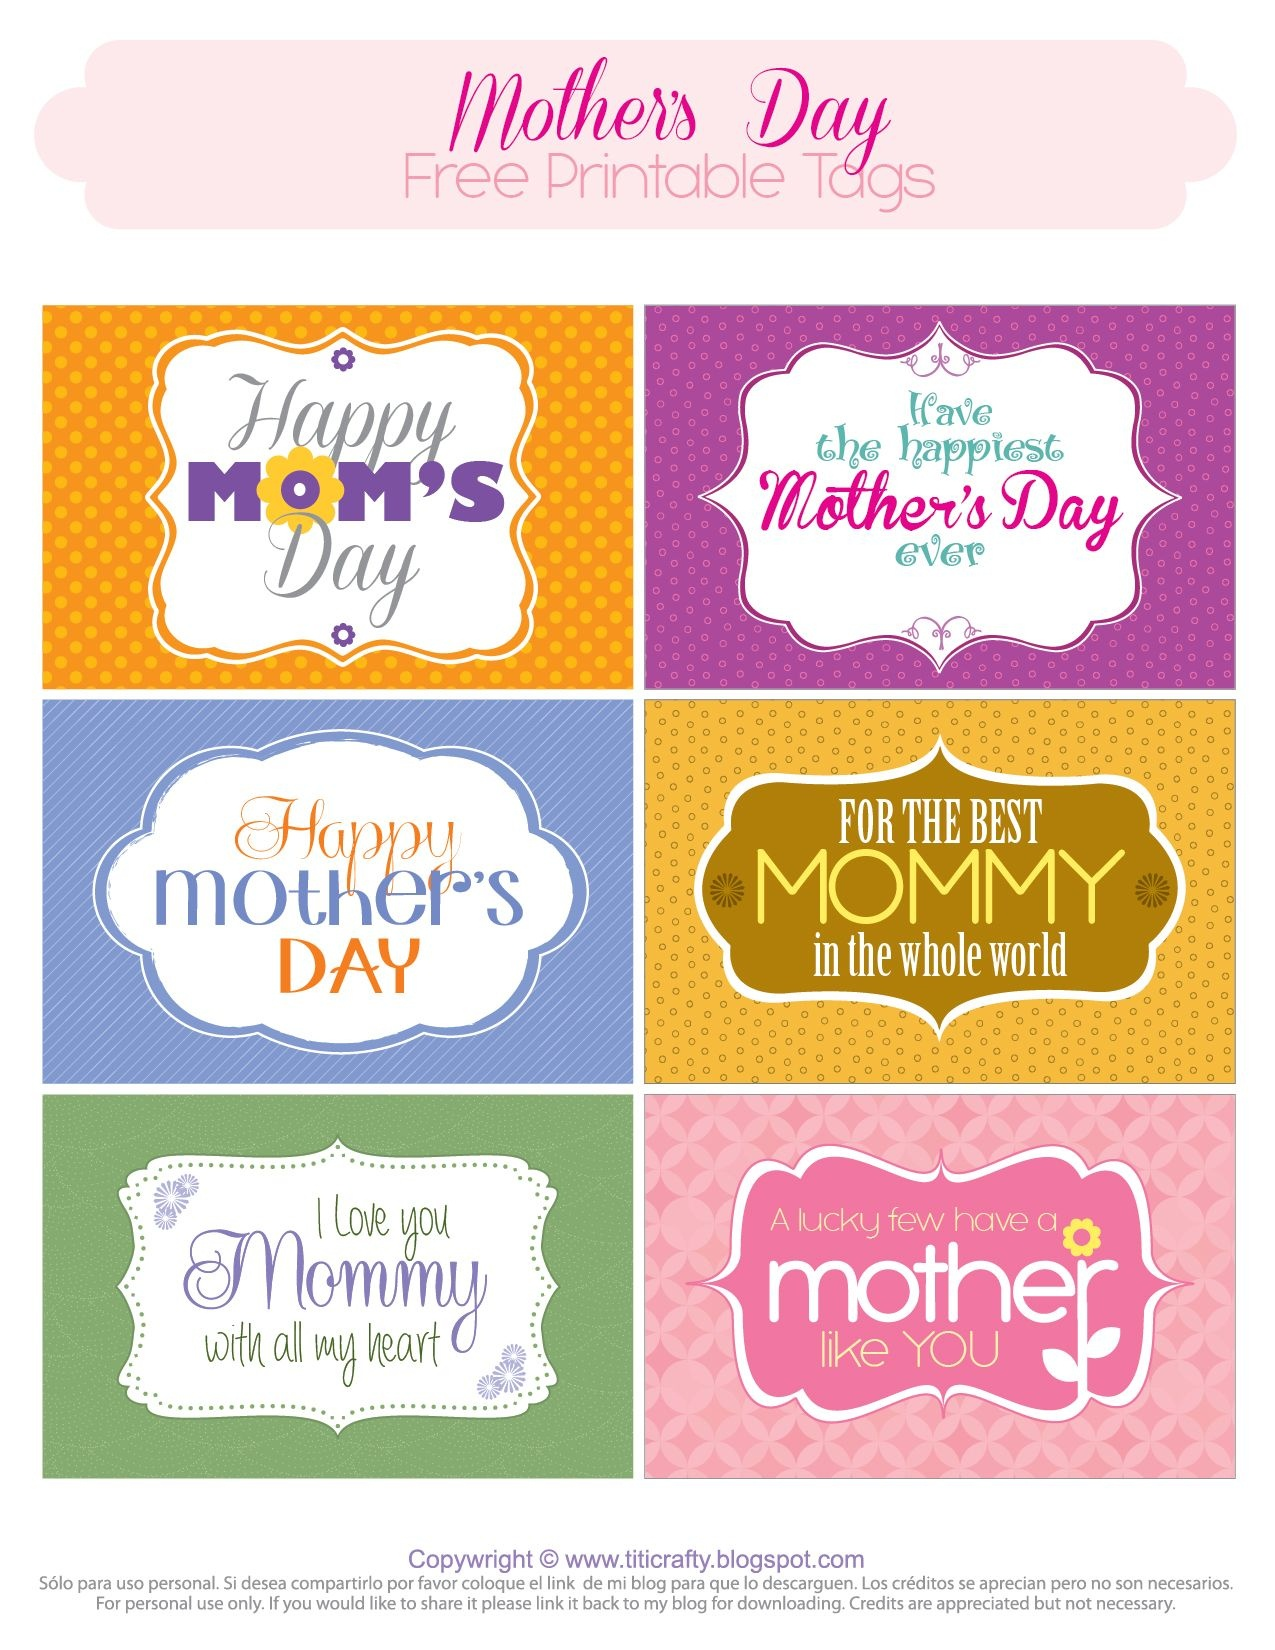 Mother's Day Free Printable Tags   *{Tcn} Freebies   Mothers Day - Free Printable Mothers Day Cards No Download